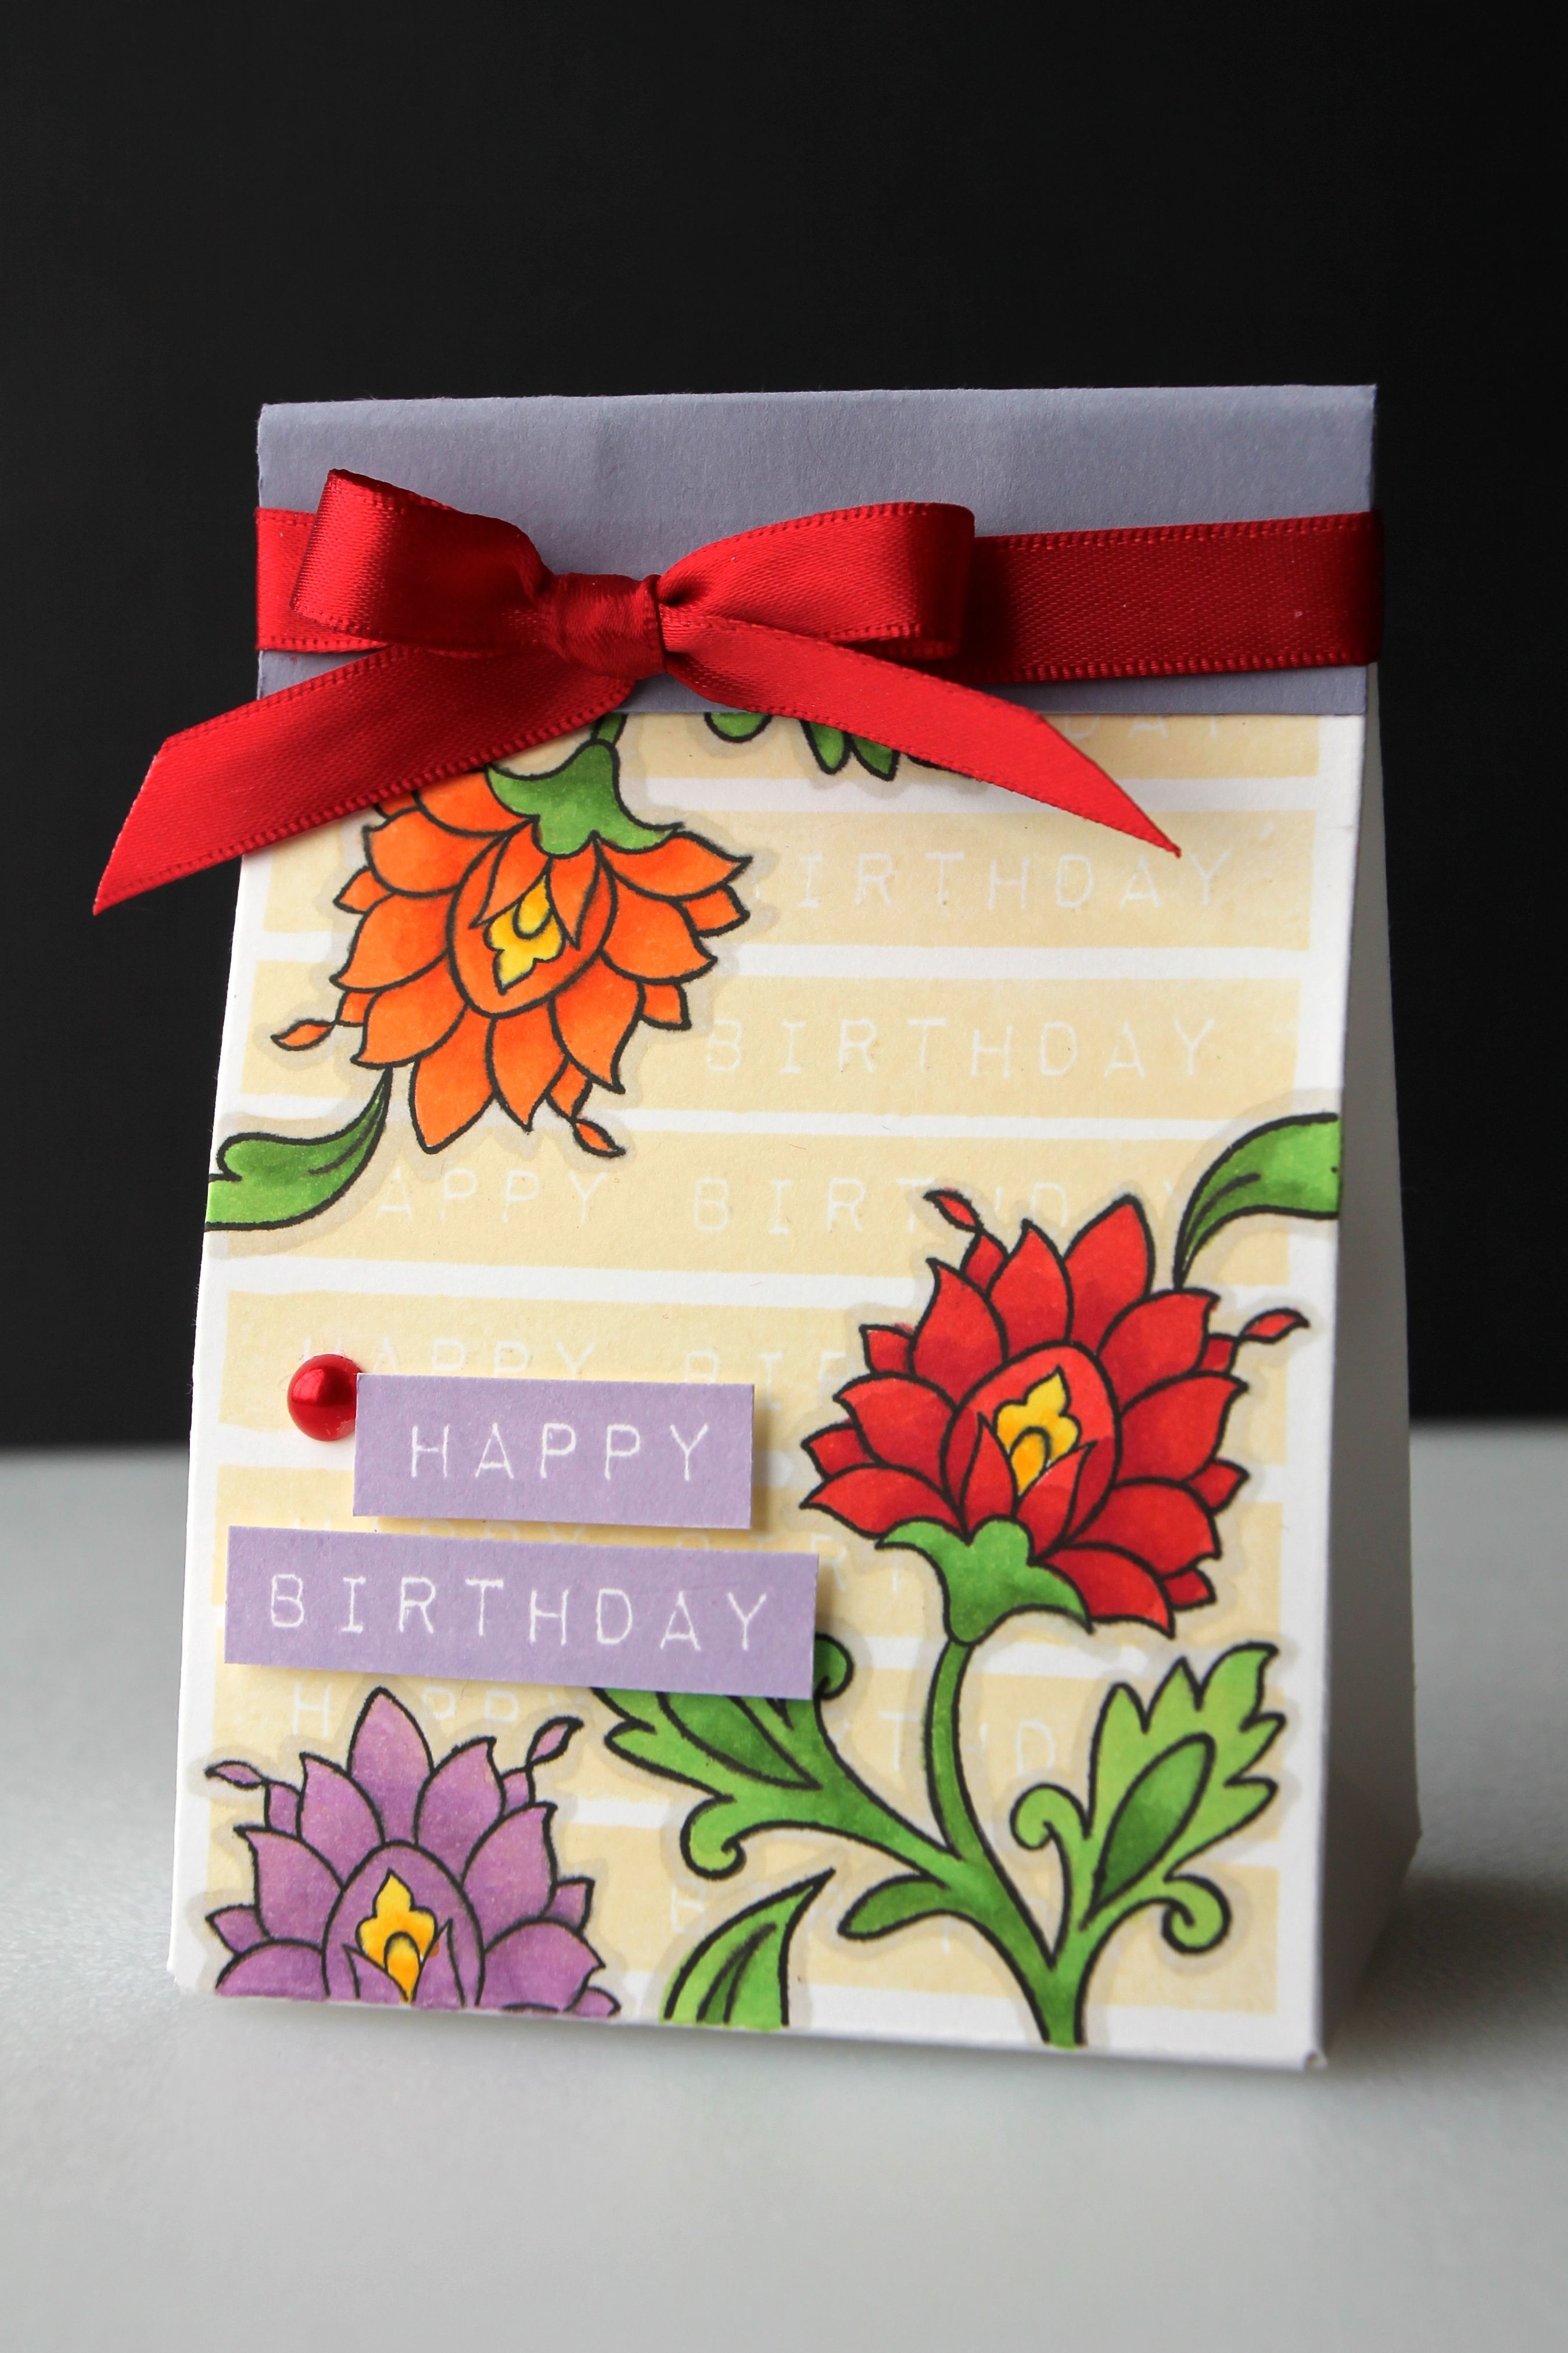 Happy Birthday Card Using The Gorgeous Flowers From Persian Motifs